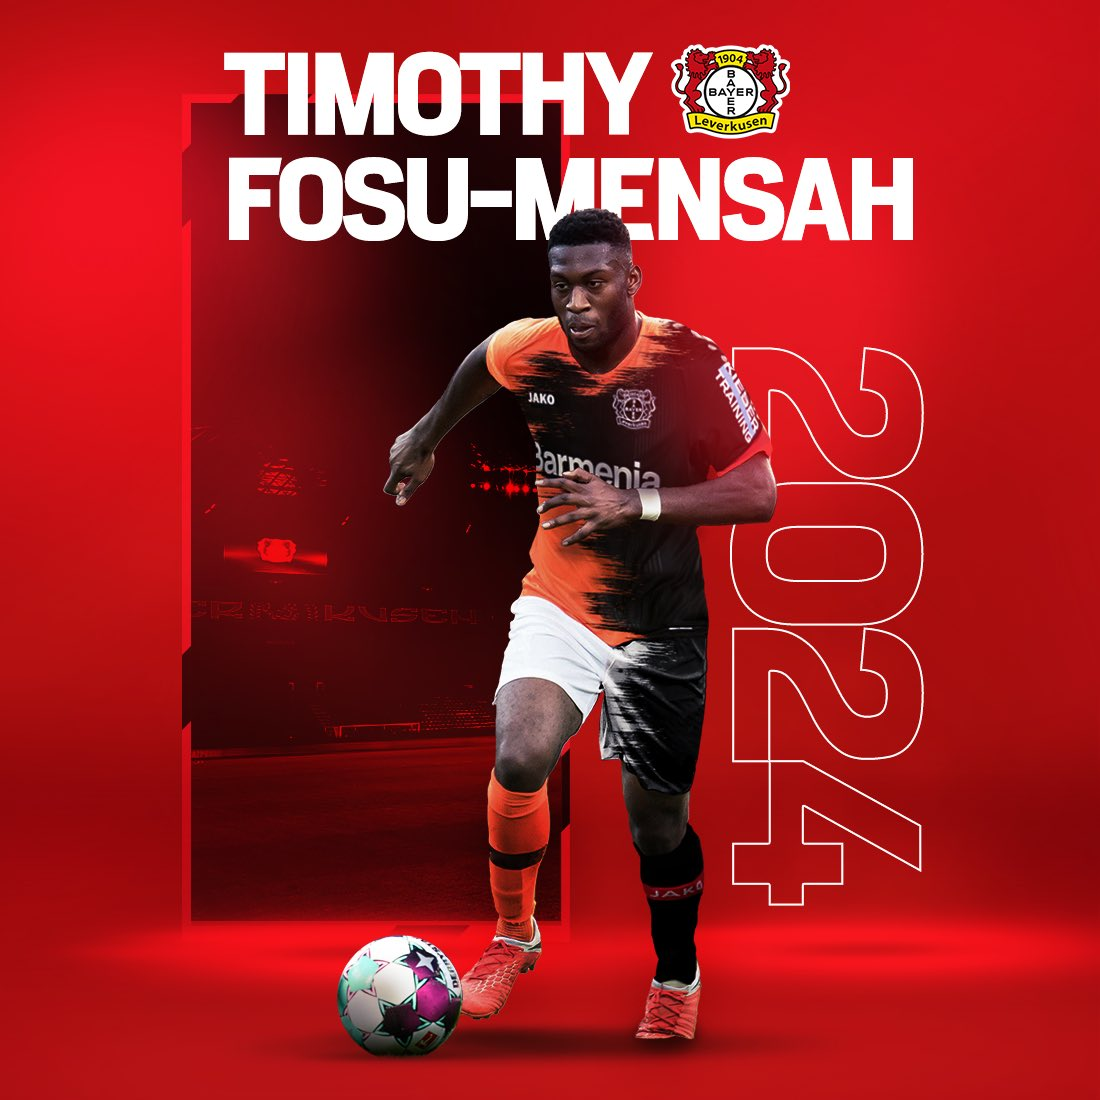 🚨 TRANSFER NEWS 🚨   Timothy Fosu-Mensah has joined Bayer 04 from Manchester United.   Welcome to the Werkself, Timothy!